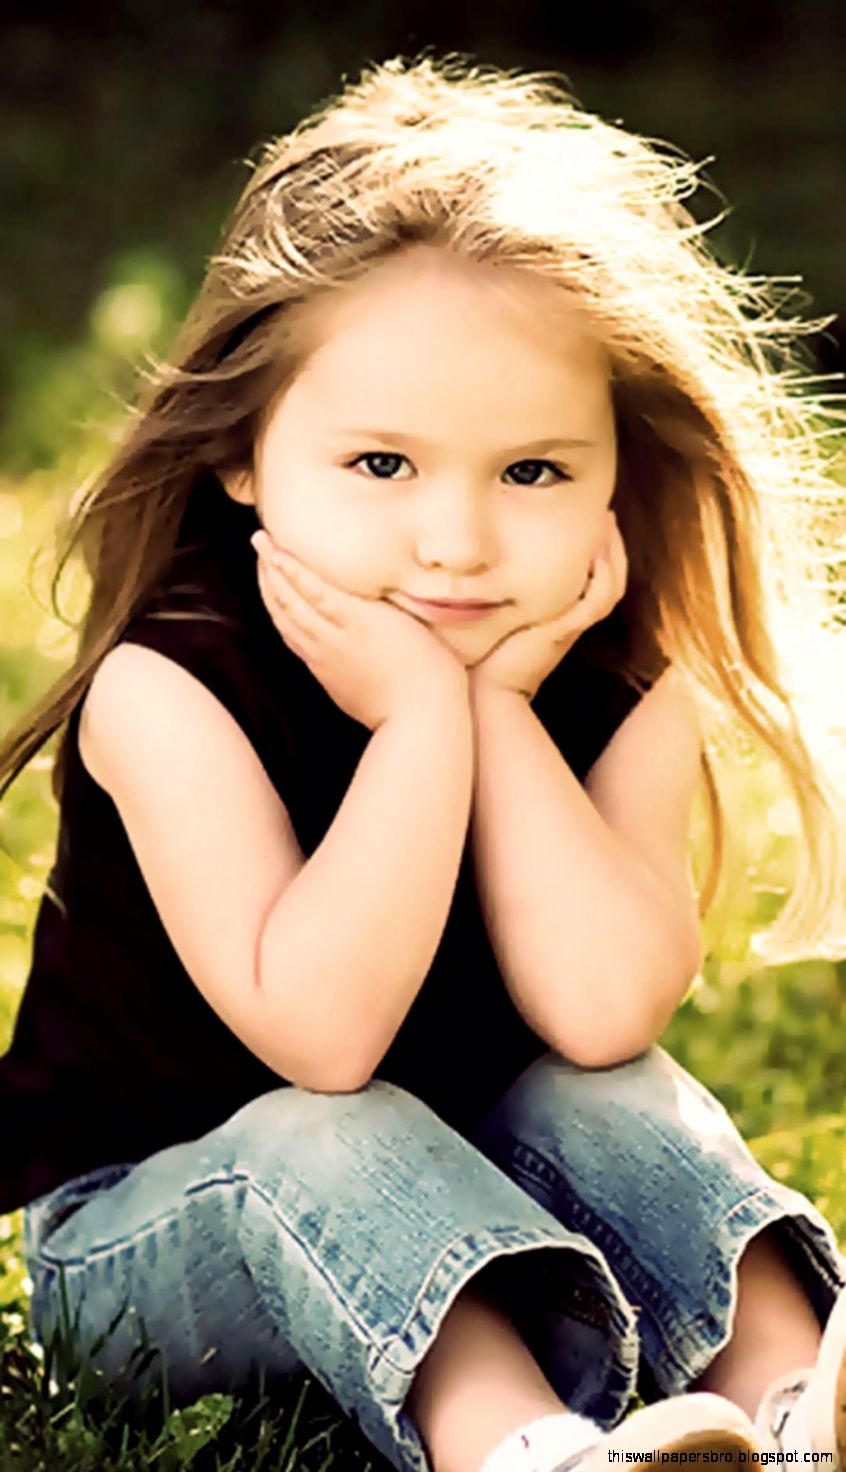 cute baby girl wallpapers hd for galaxy s4 | this wallpapers